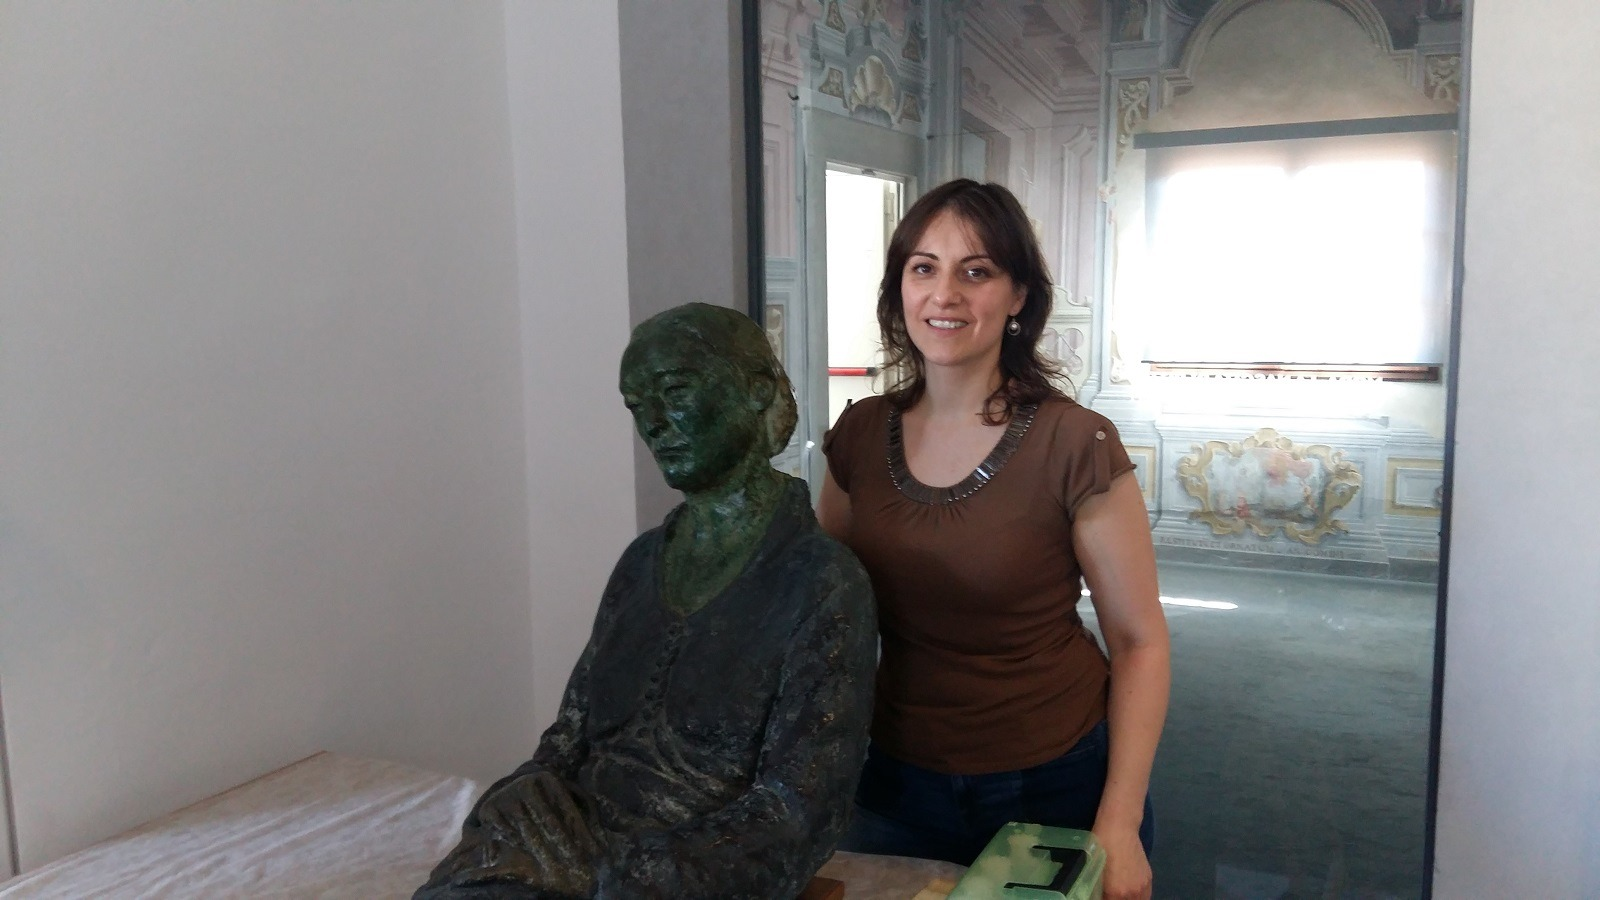 Conservator Merj Nesi on the eve of the sculpture's permanent museum exhibition